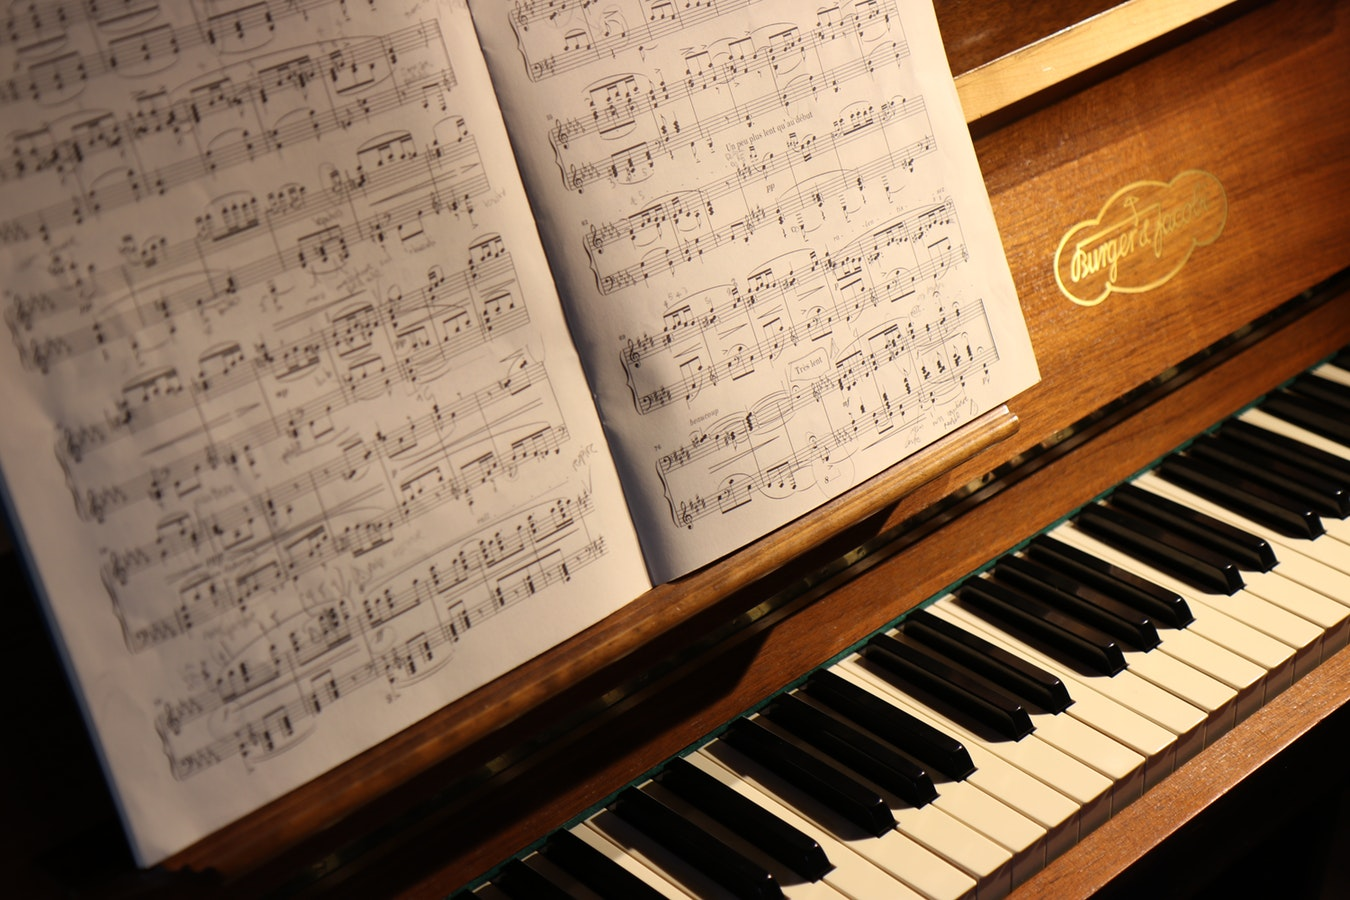 A piano with a music book open so an individual can play songs about growing older